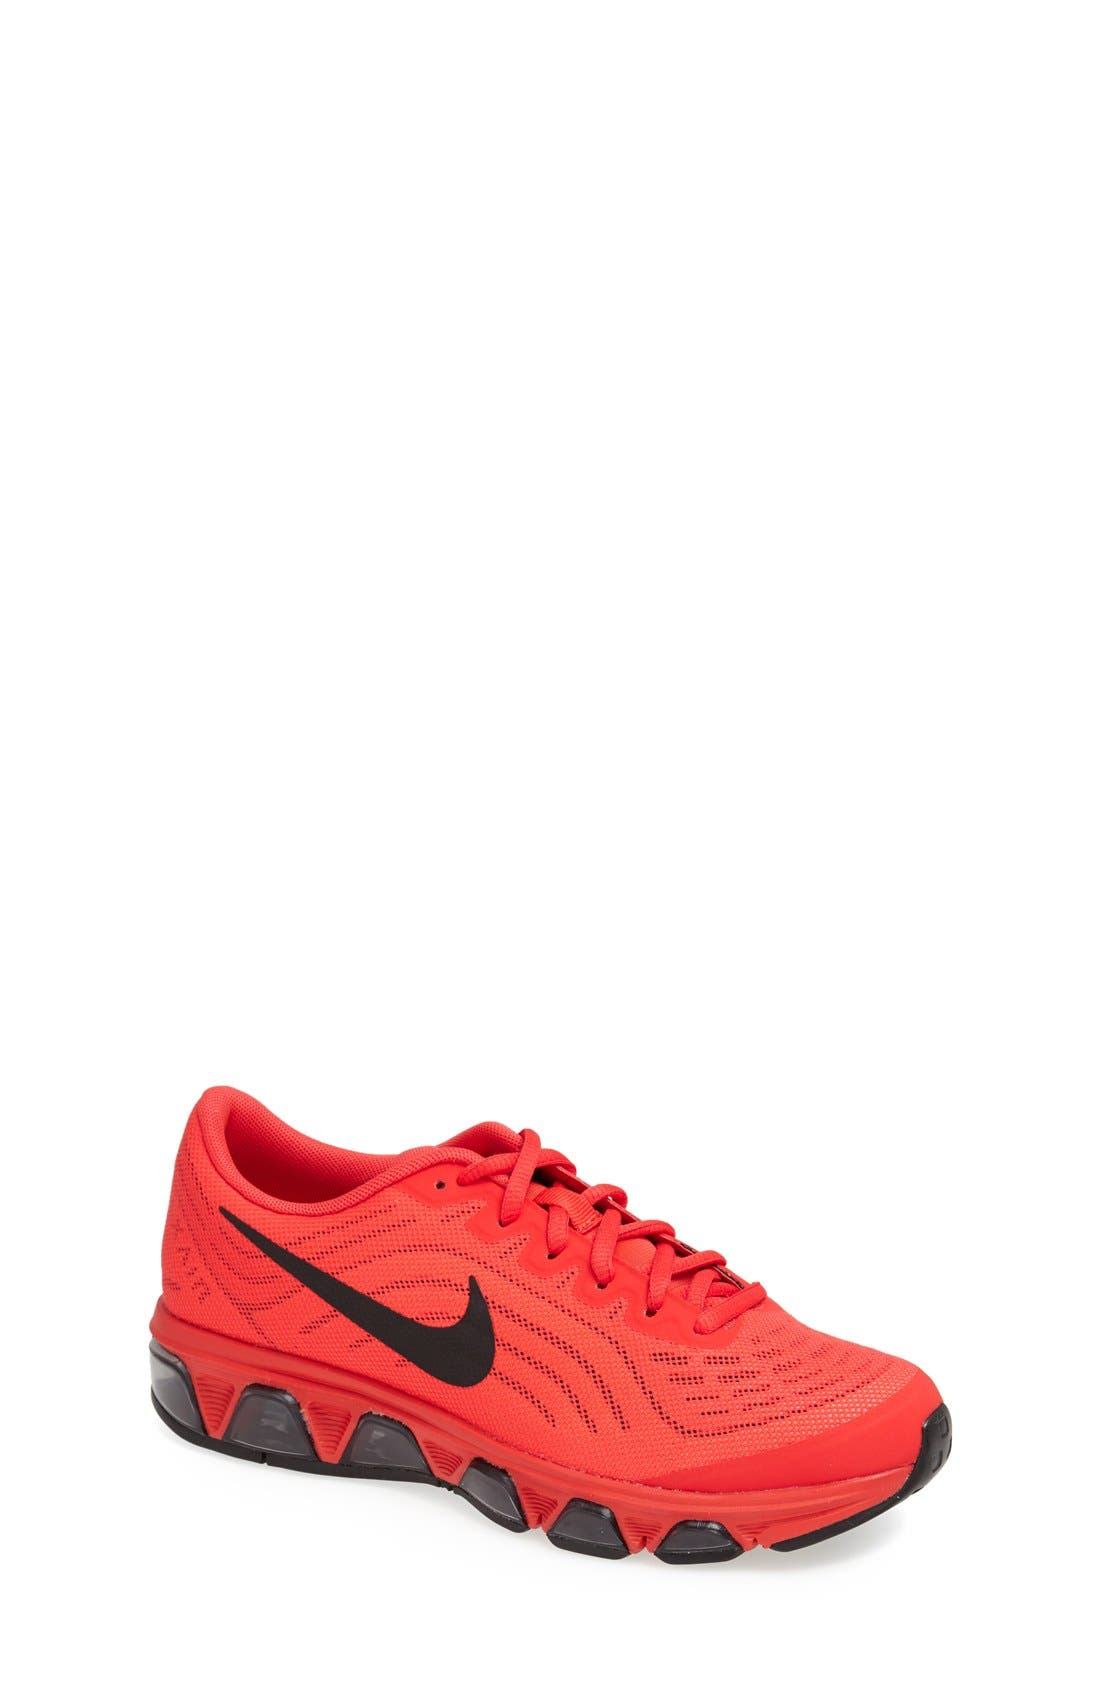 Alternate Image 1 Selected - Nike 'Air Max Tailwind' Running Shoe (Big Kids)